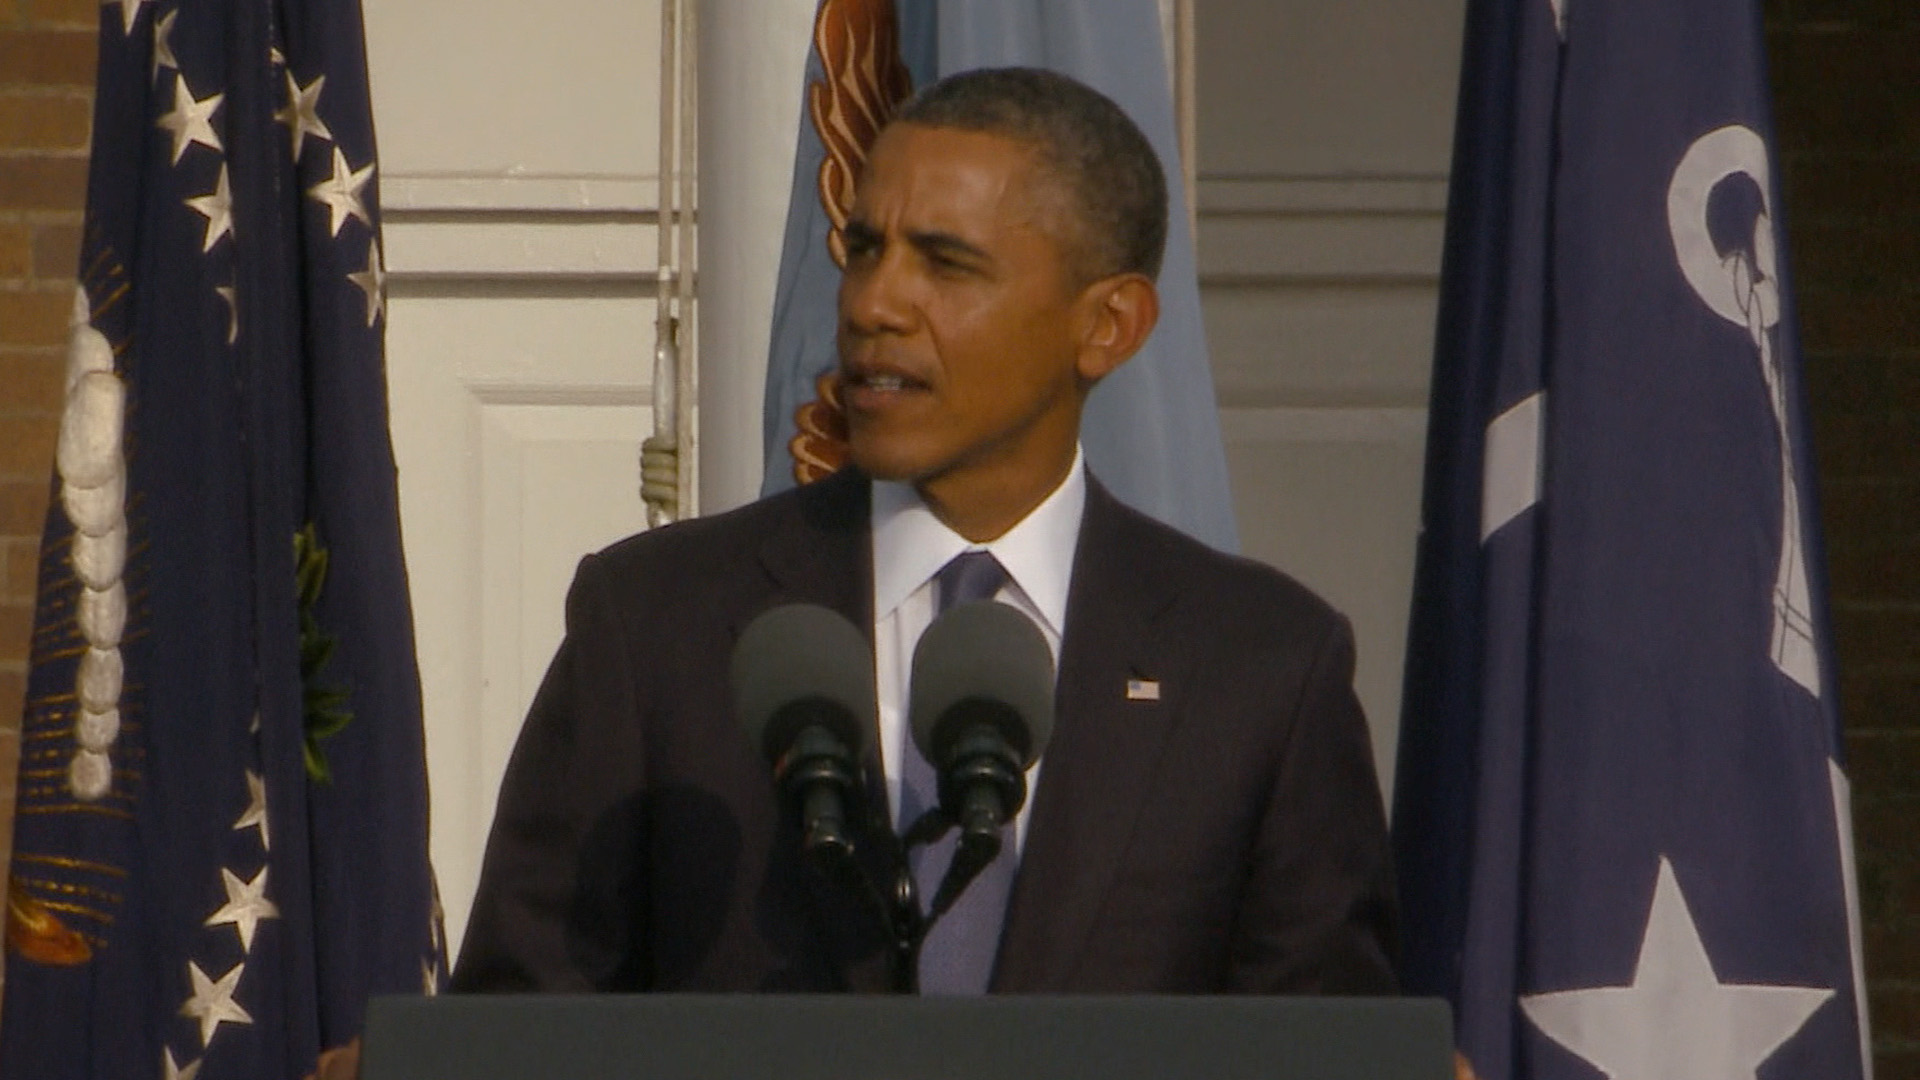 Obama: mass shootings 'ought to obsess us'